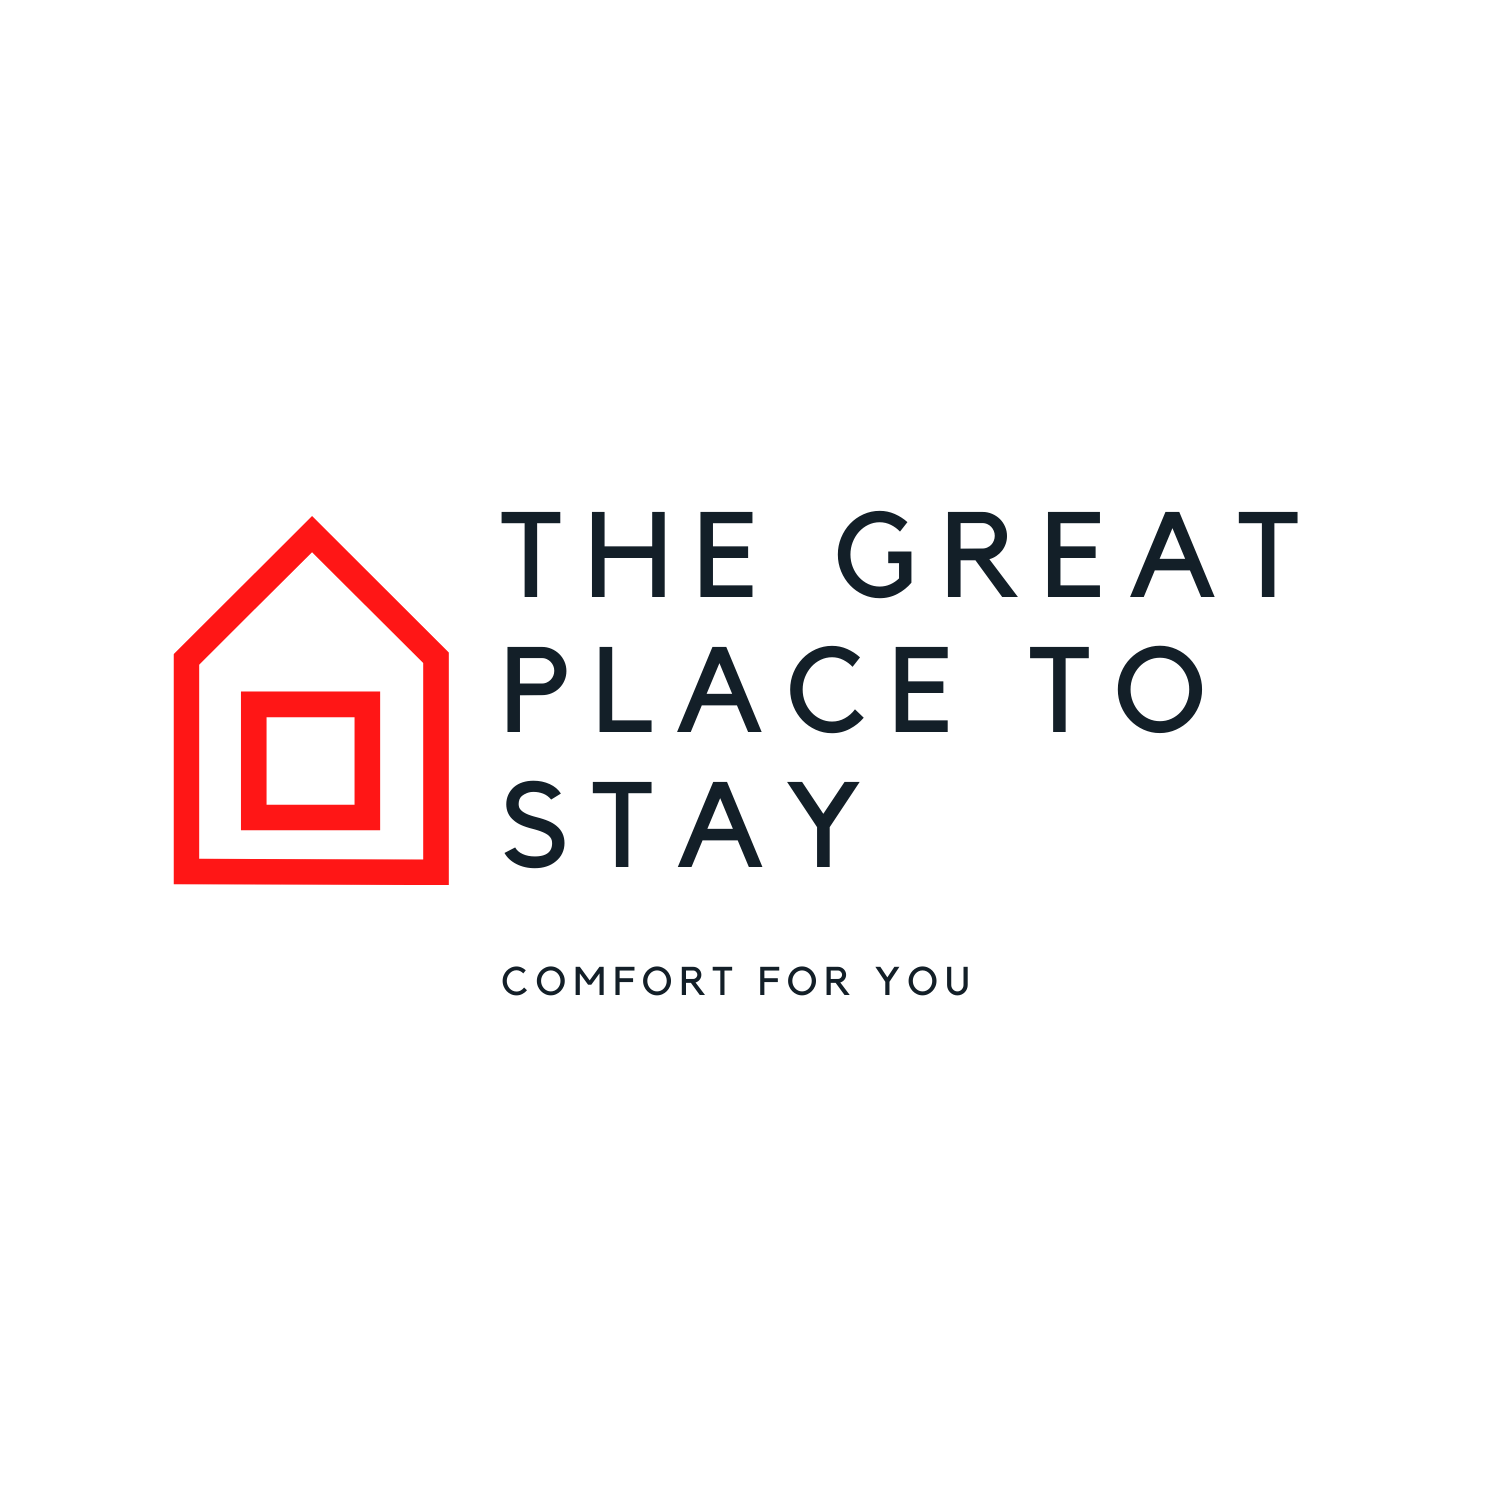 The Great Place To Stay